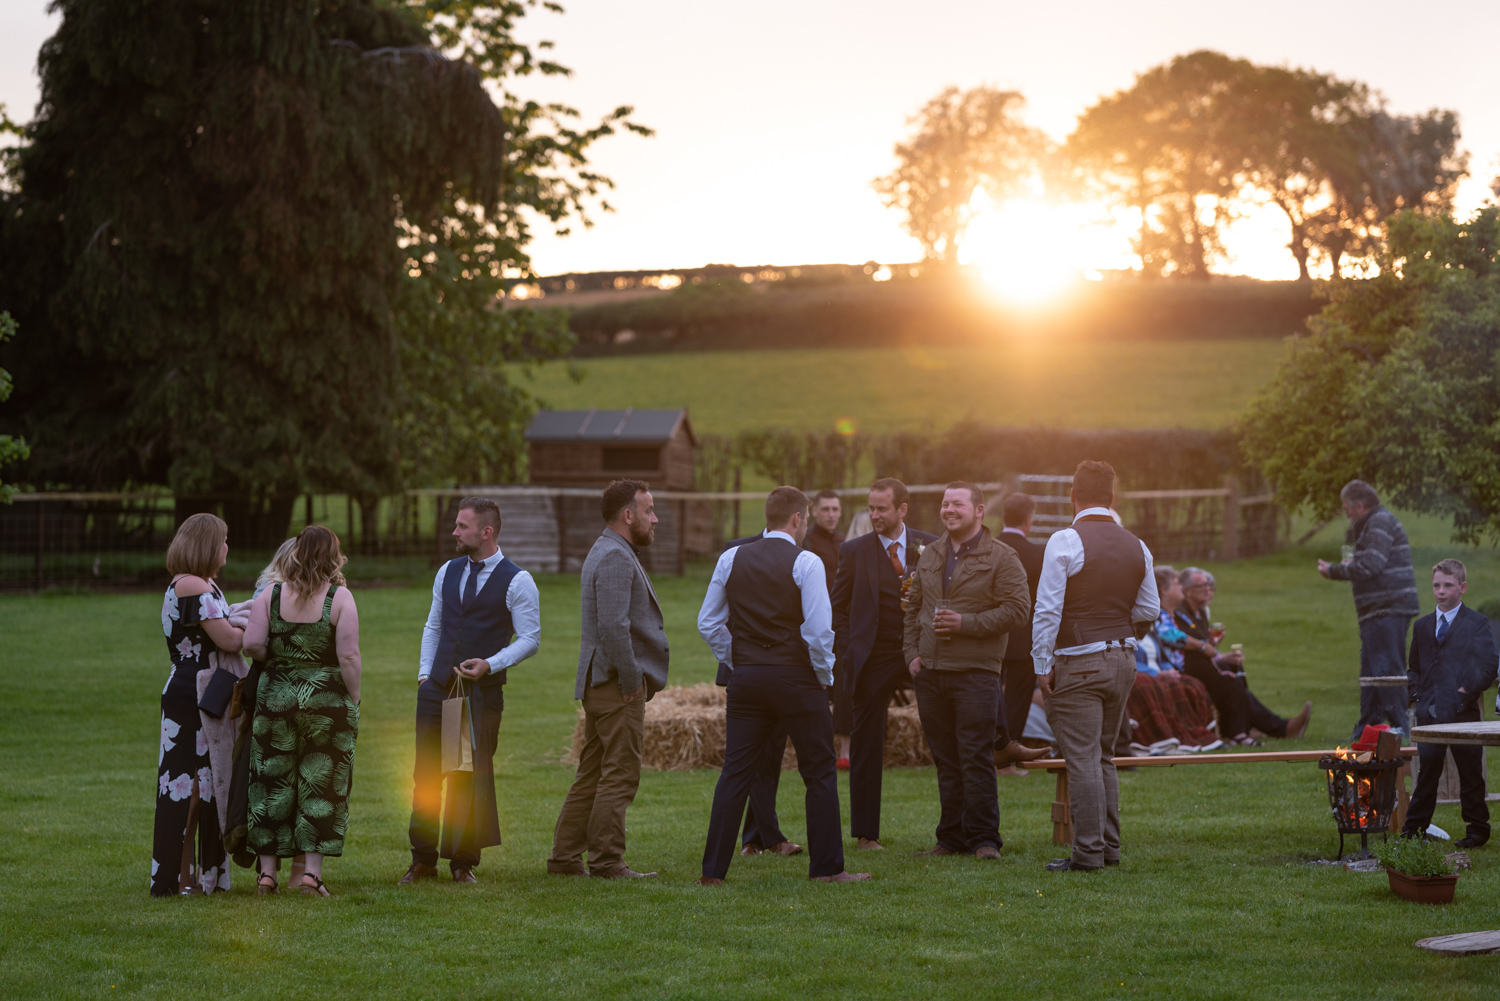 Sunset over wedding guests